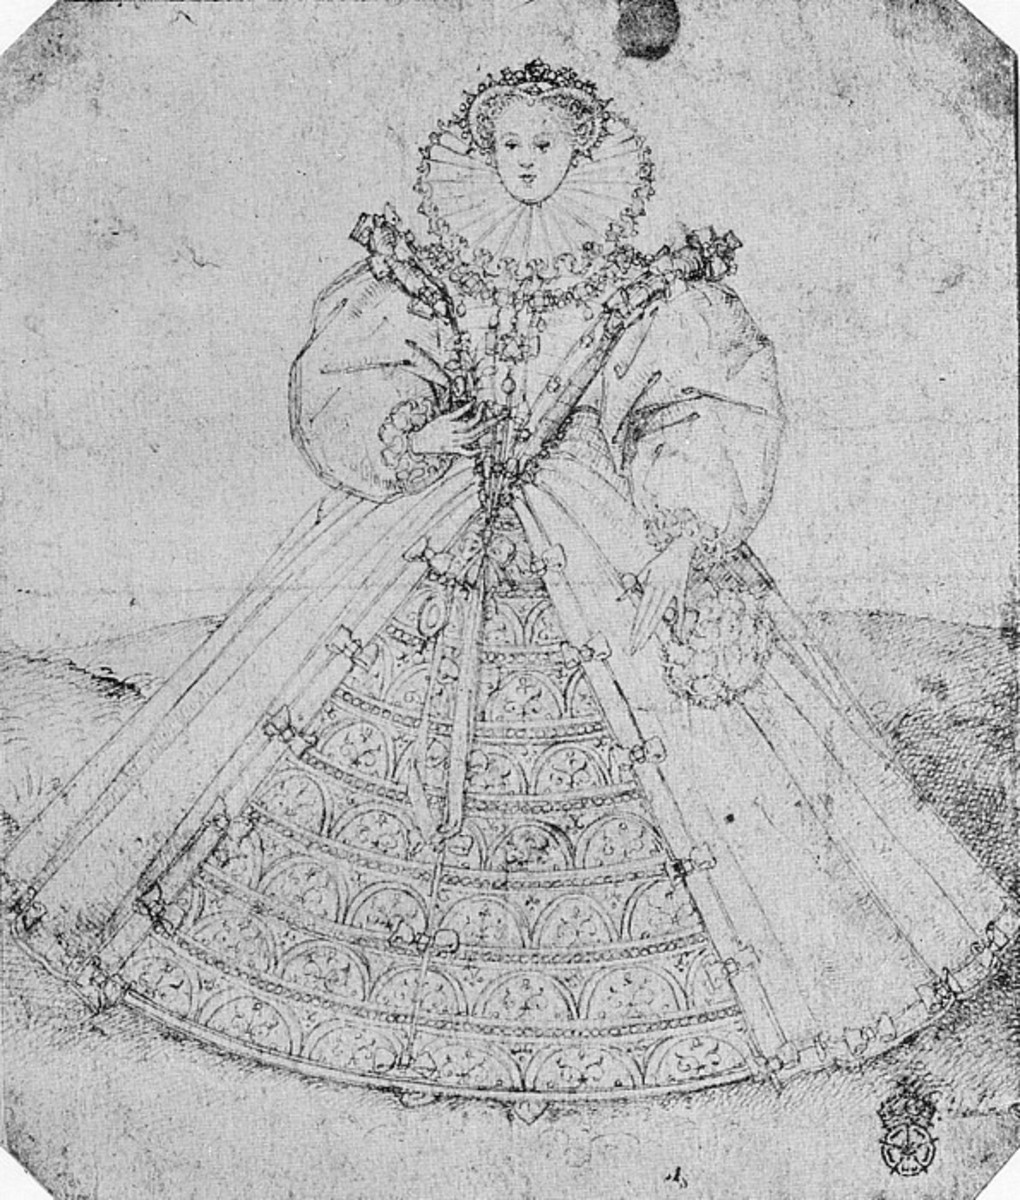 I think this is an exaggeration on how wide the skirts are in this gown to how tall this lady is, but the widening of the skirts is happening in the 1580's